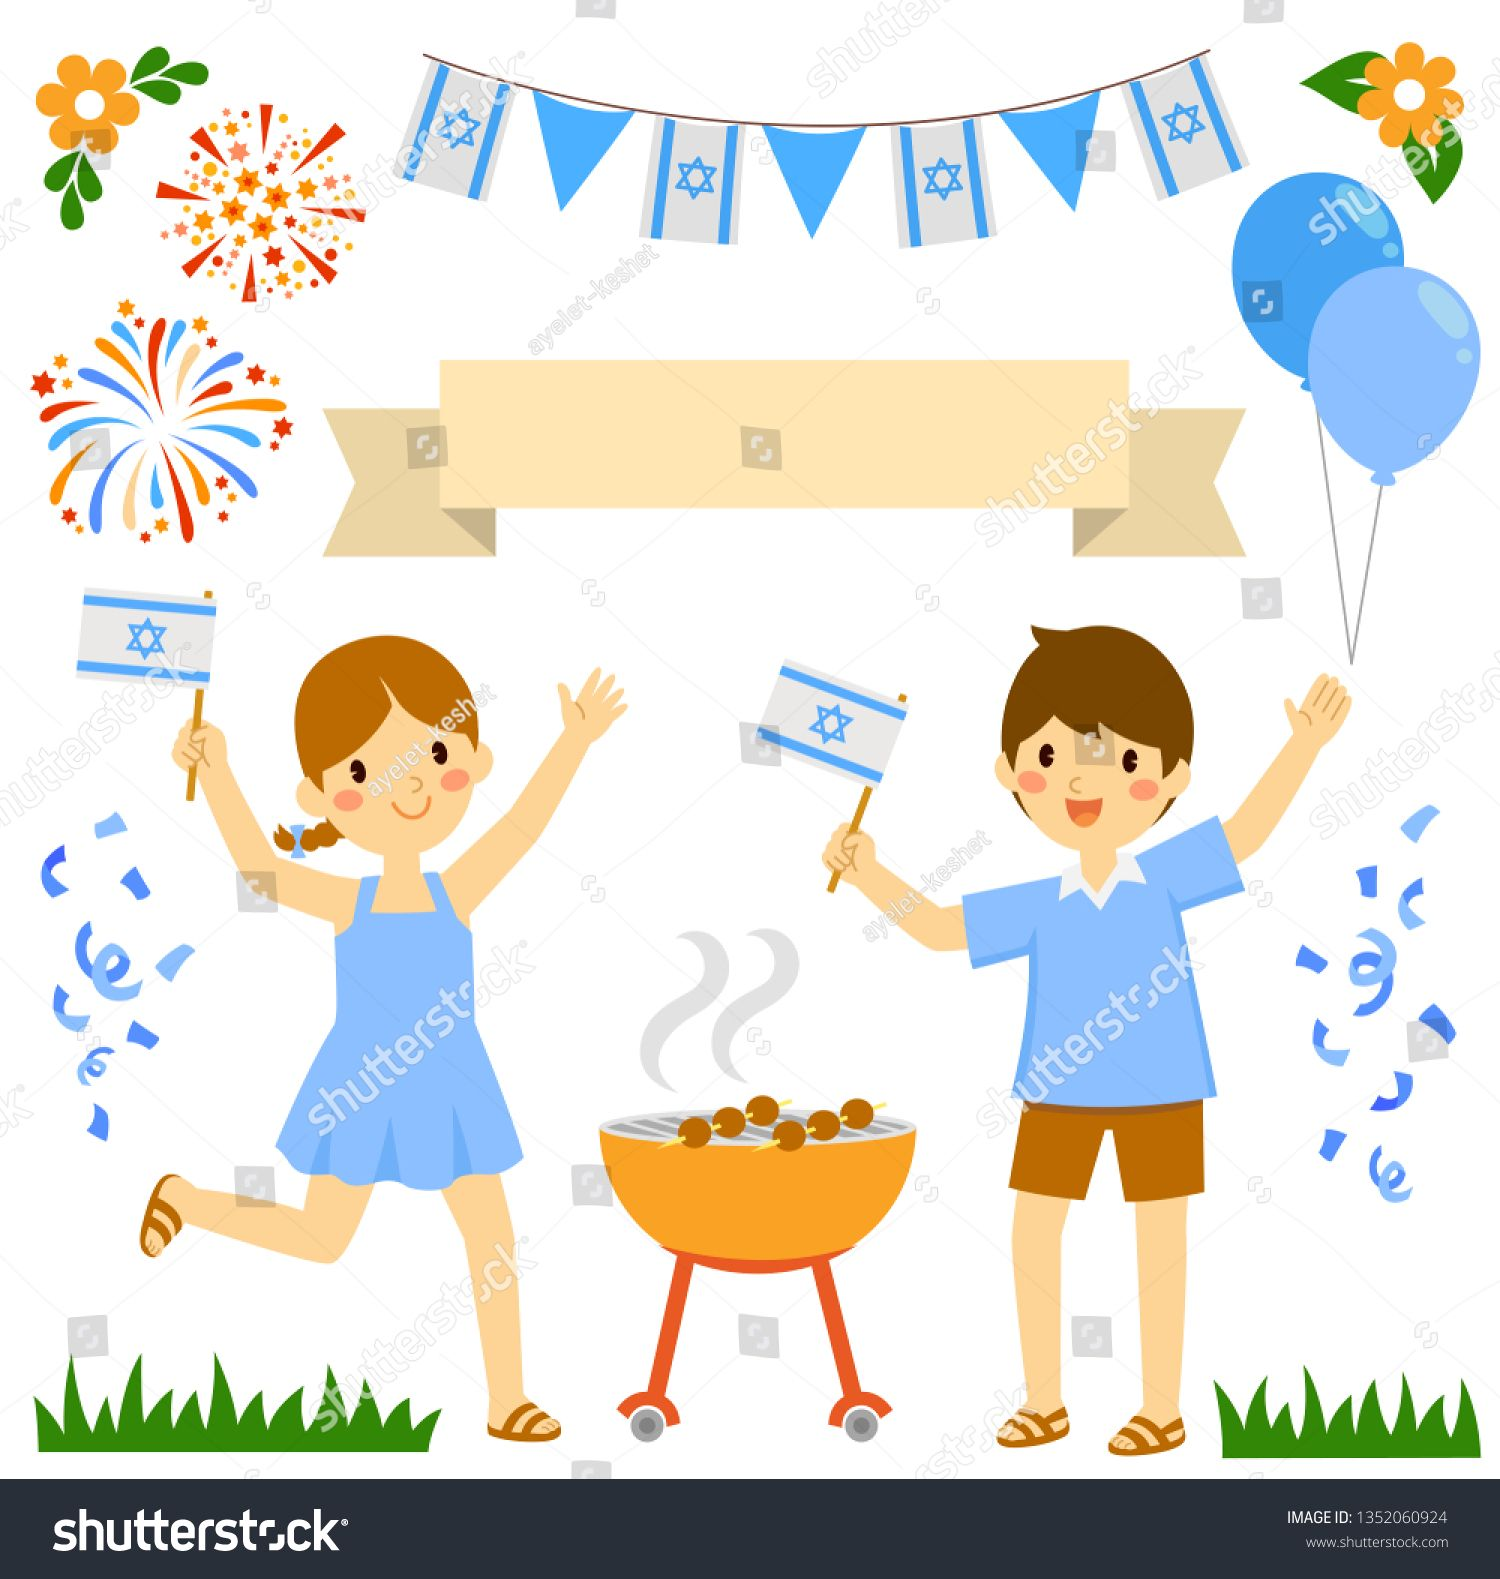 Clip art set for the Israeli Independence Day with kids and flags ,